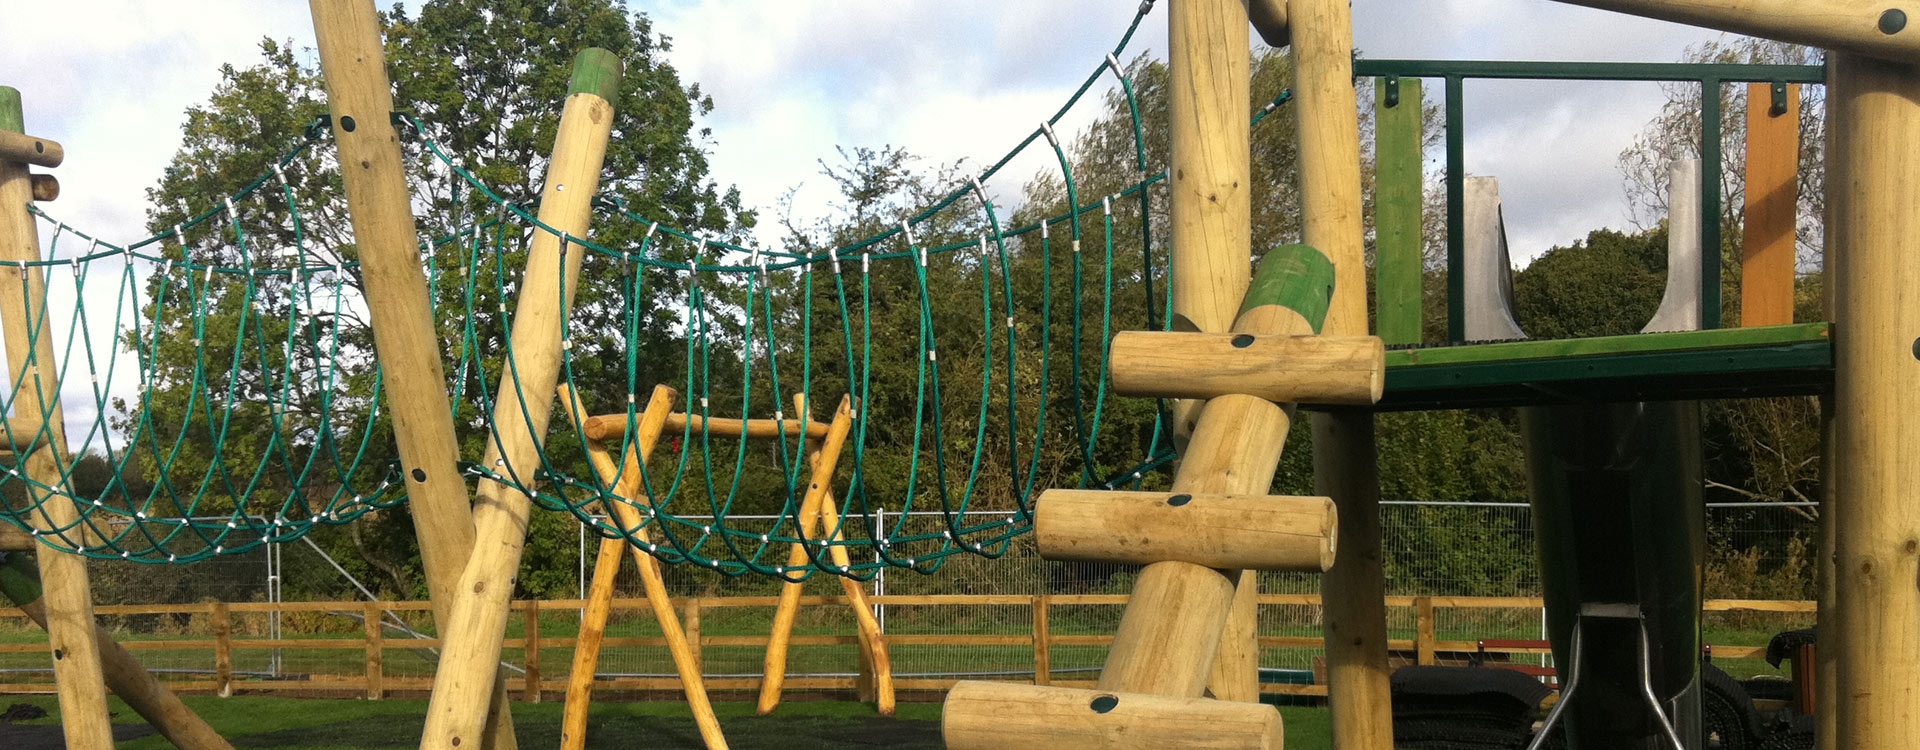 Play Area Safer Surfacing Soft Surfaces Ltd The Uk S